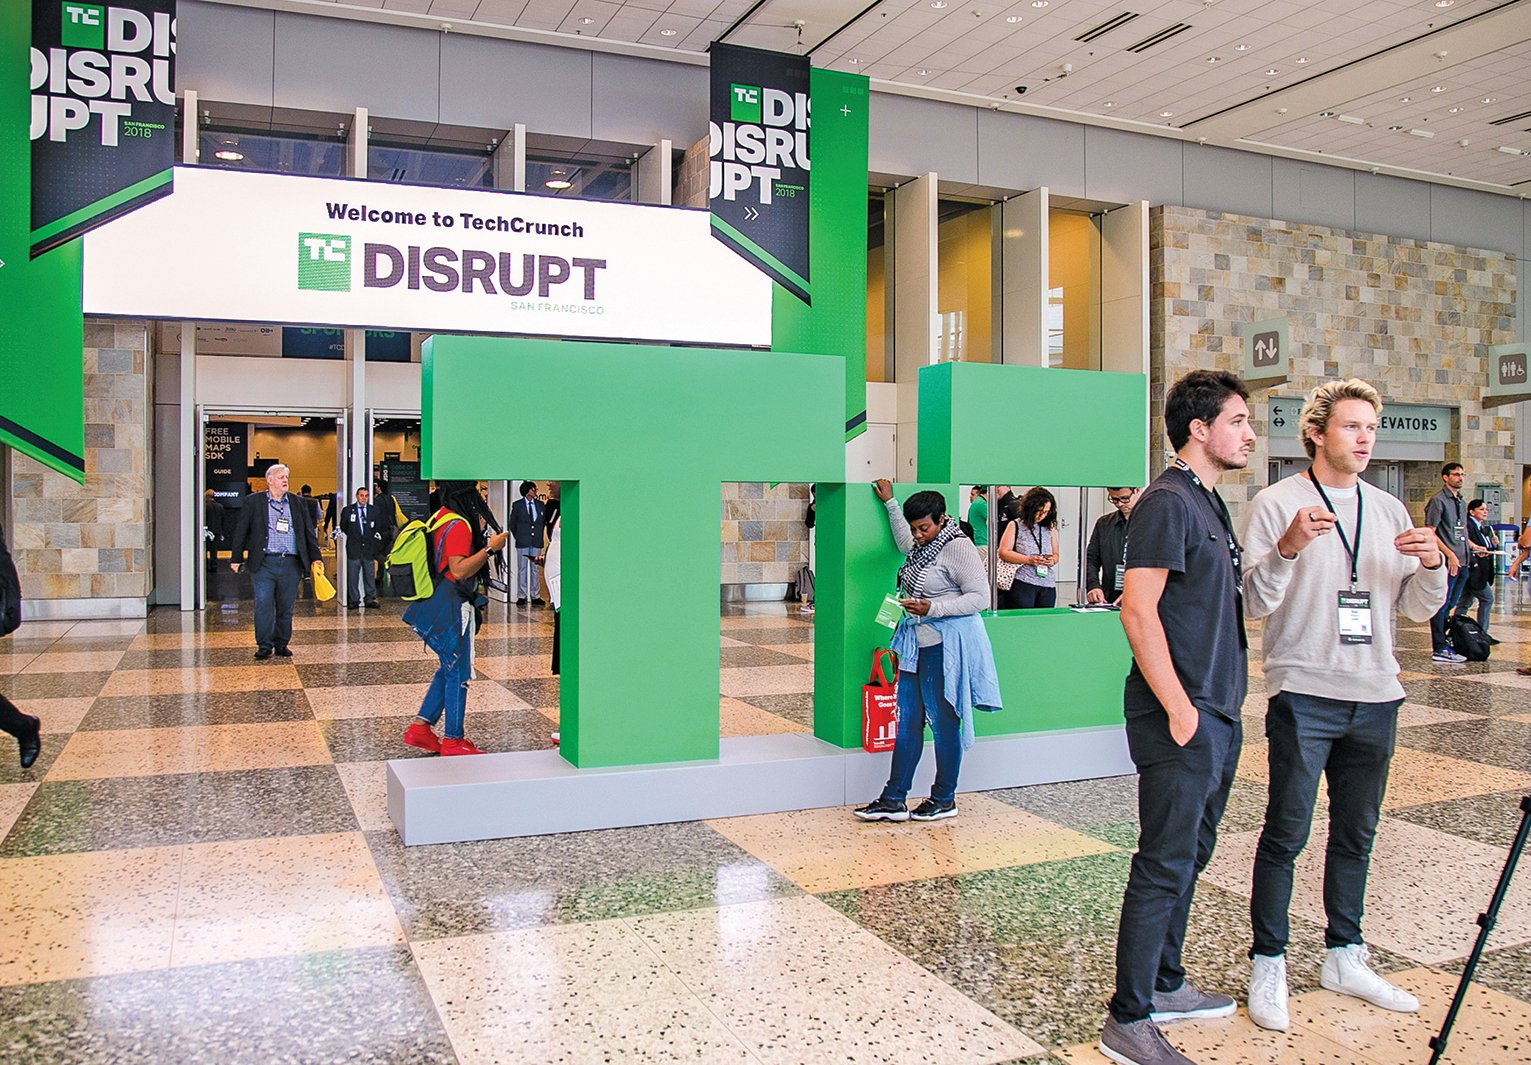 國際創業盛會「TechCrunch Disrupt」9月5日開始在三藩市盛大展開,現場有超過千家廠商出展。(曹景哲/大紀元)